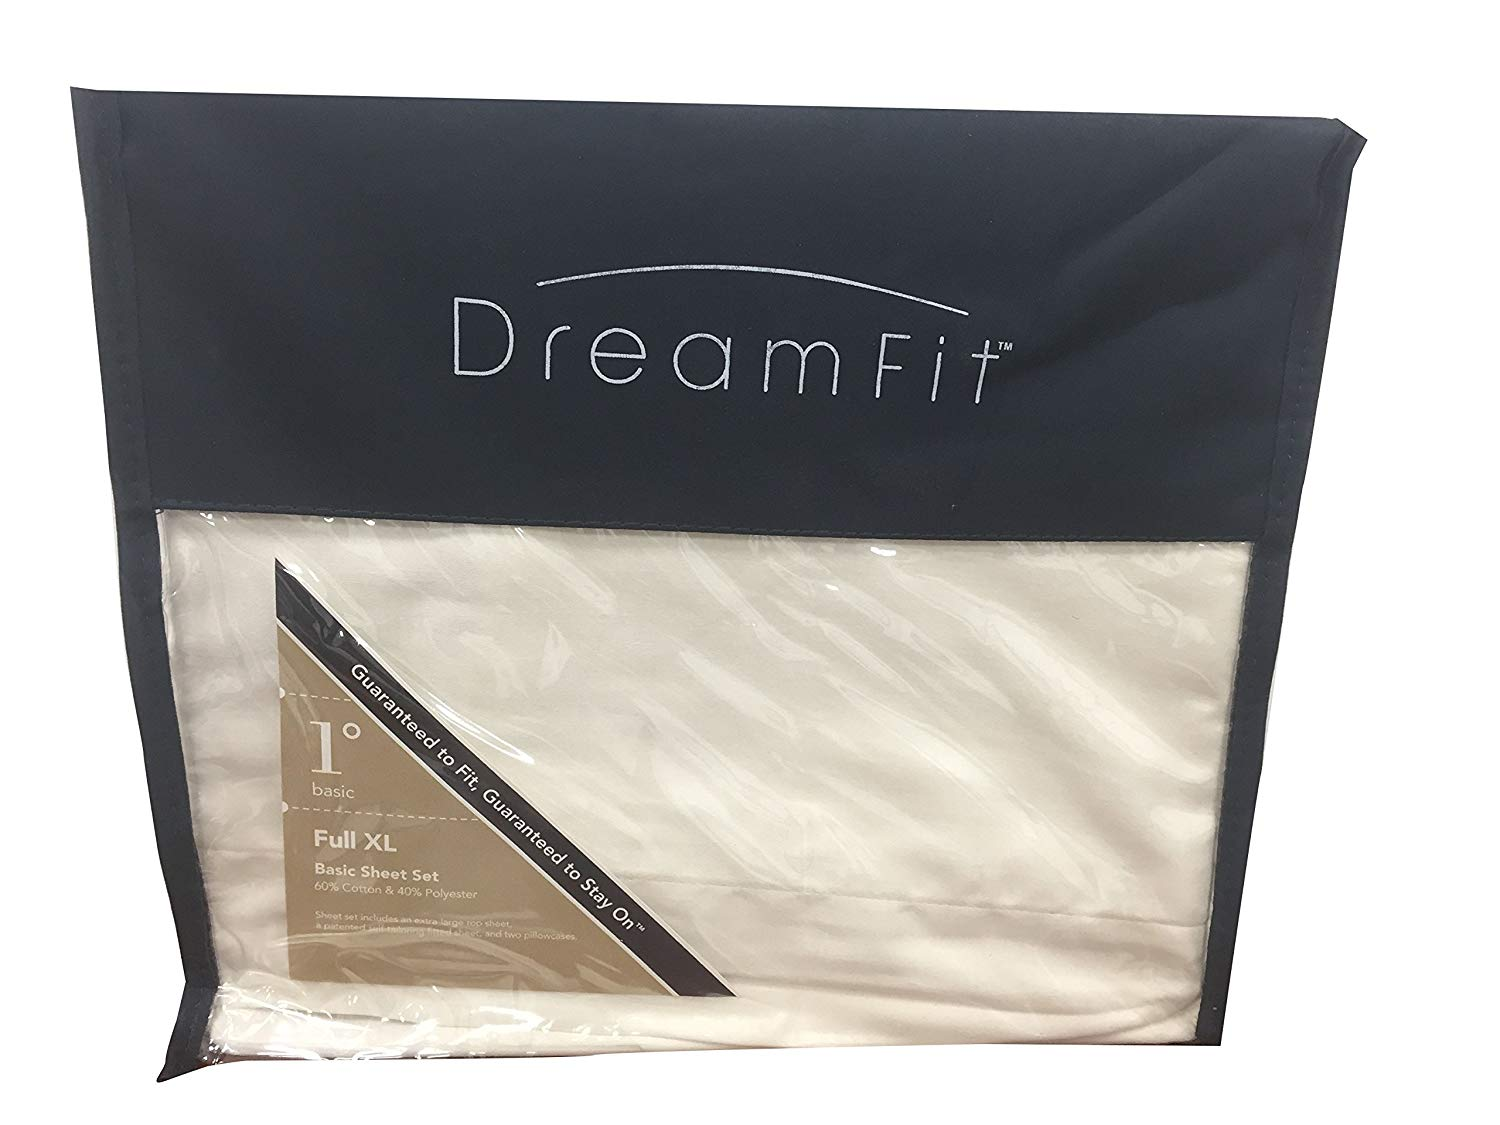 bfdd27abb Get Quotations · Dream Fit Full XL Basic Sheet Set